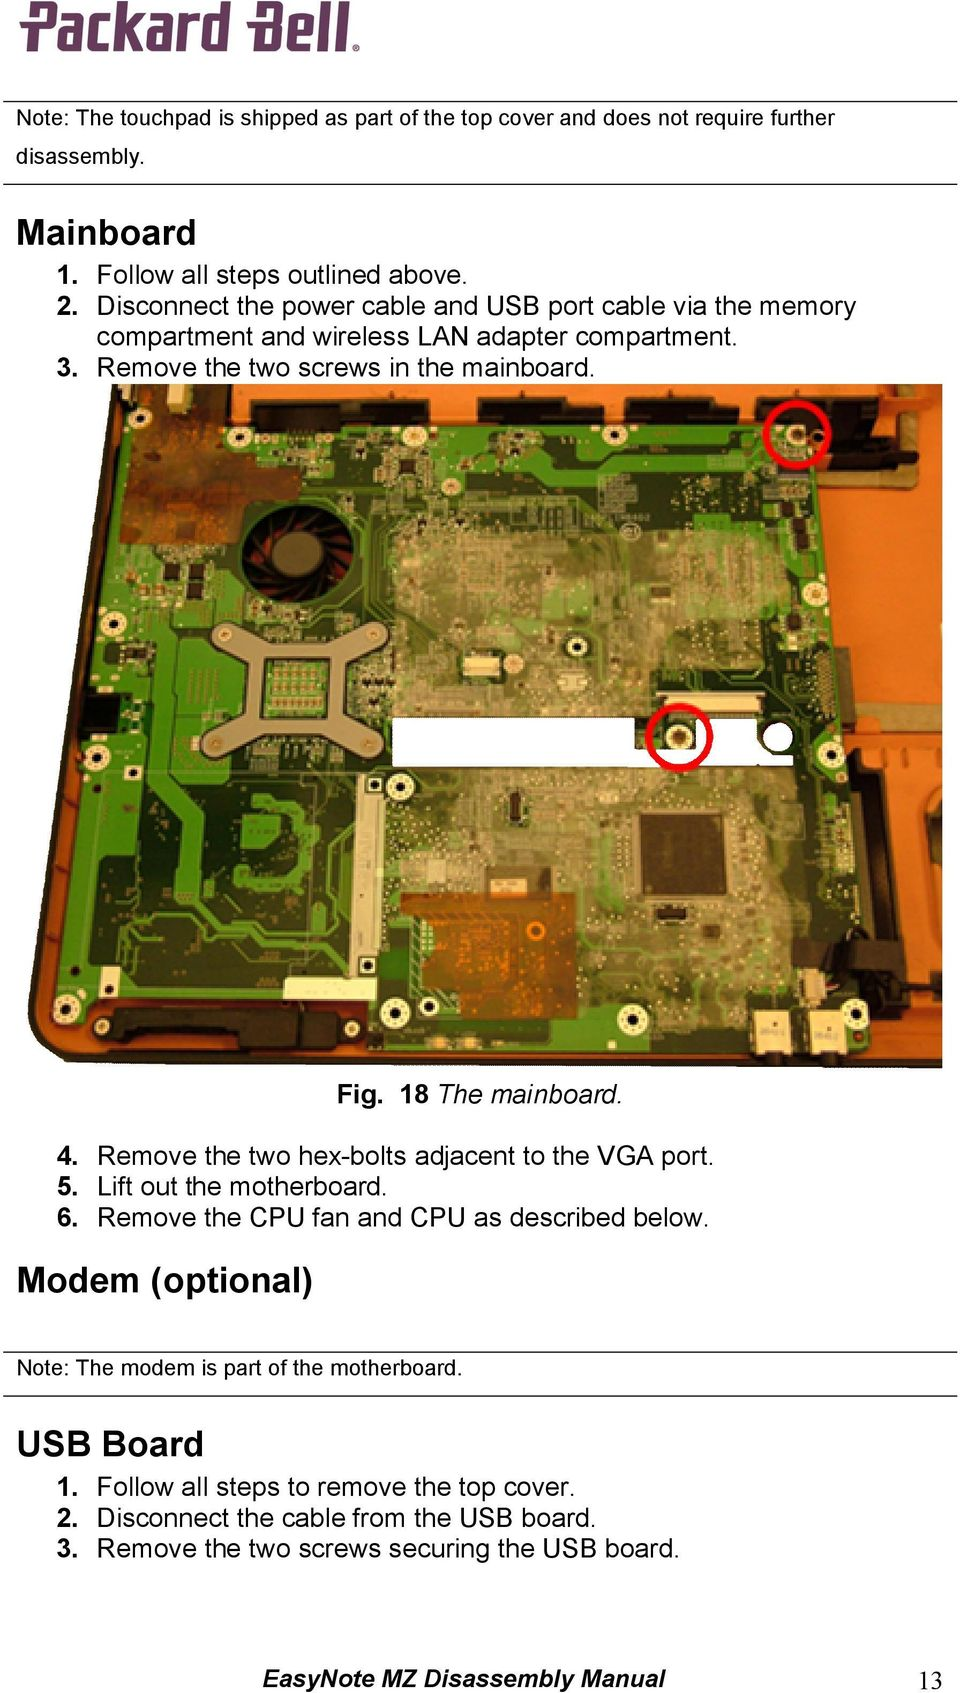 18 The mainboard. 4. Remove the two hex-bolts adjacent to the VGA port. 5. Lift out the motherboard. 6. Remove the CPU fan and CPU as described below.